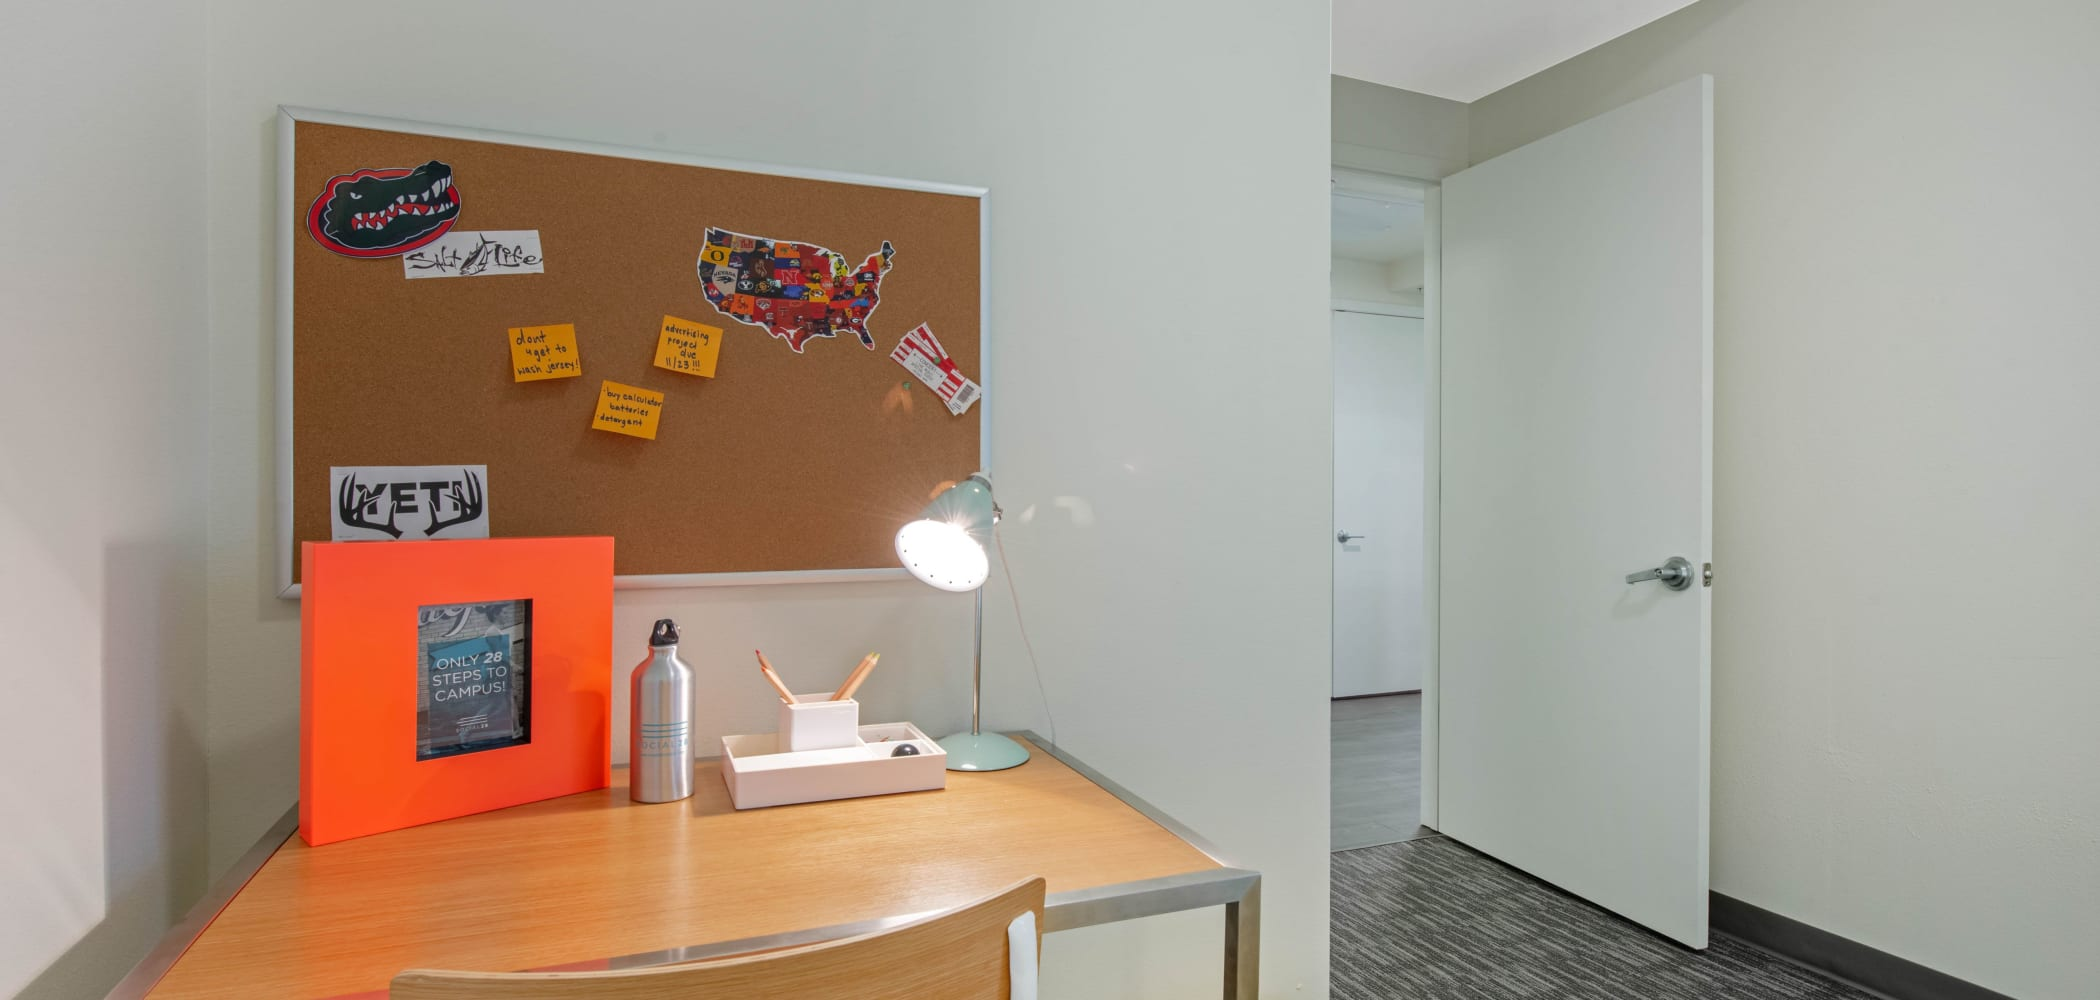 Bedroom study space at Social 28 in Gainesville, Florida